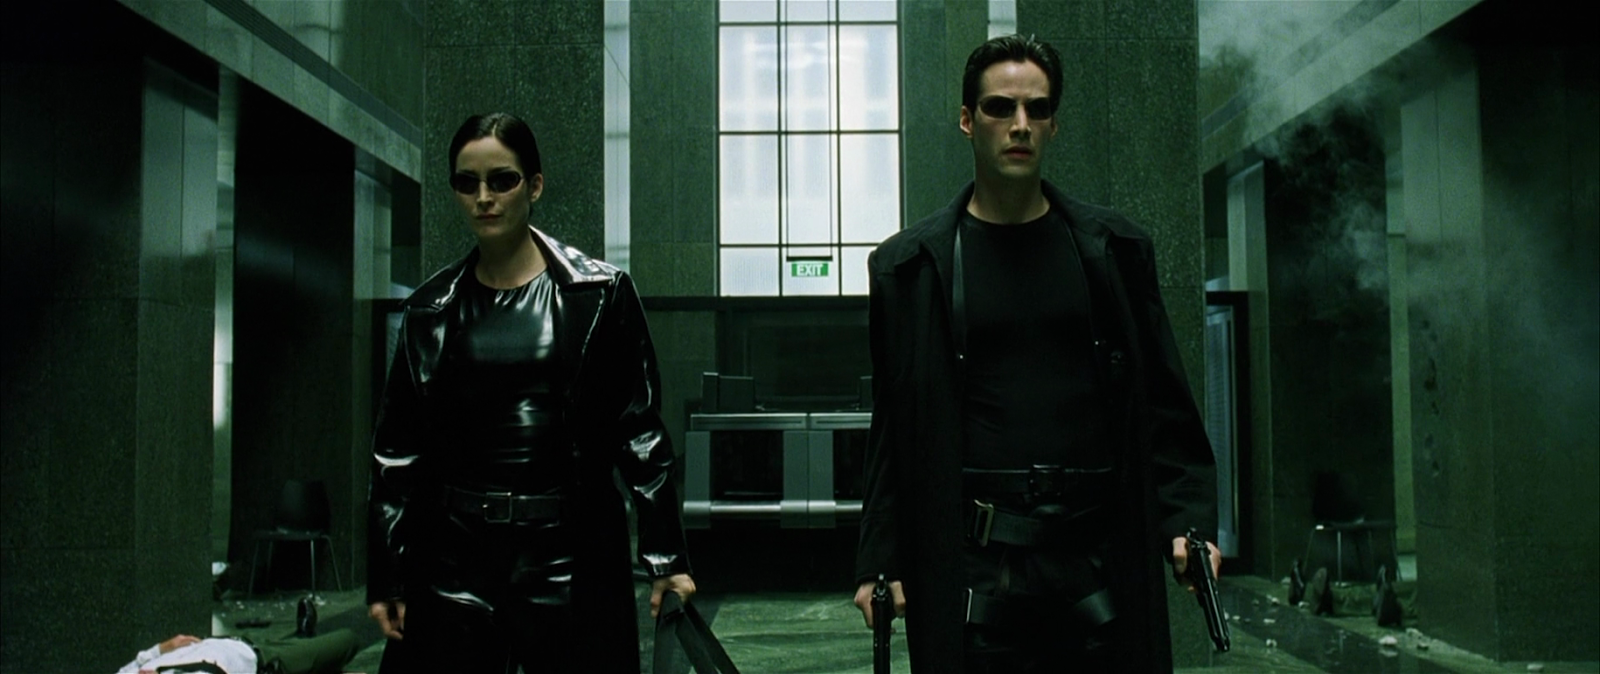 andy dissertation larry matrix movie race trilogy wachowski wachowski Japanese animation and how its been influenced by american culture in the  the matrix' trilogy, andy and larry wachowski,  dissertation writing service.